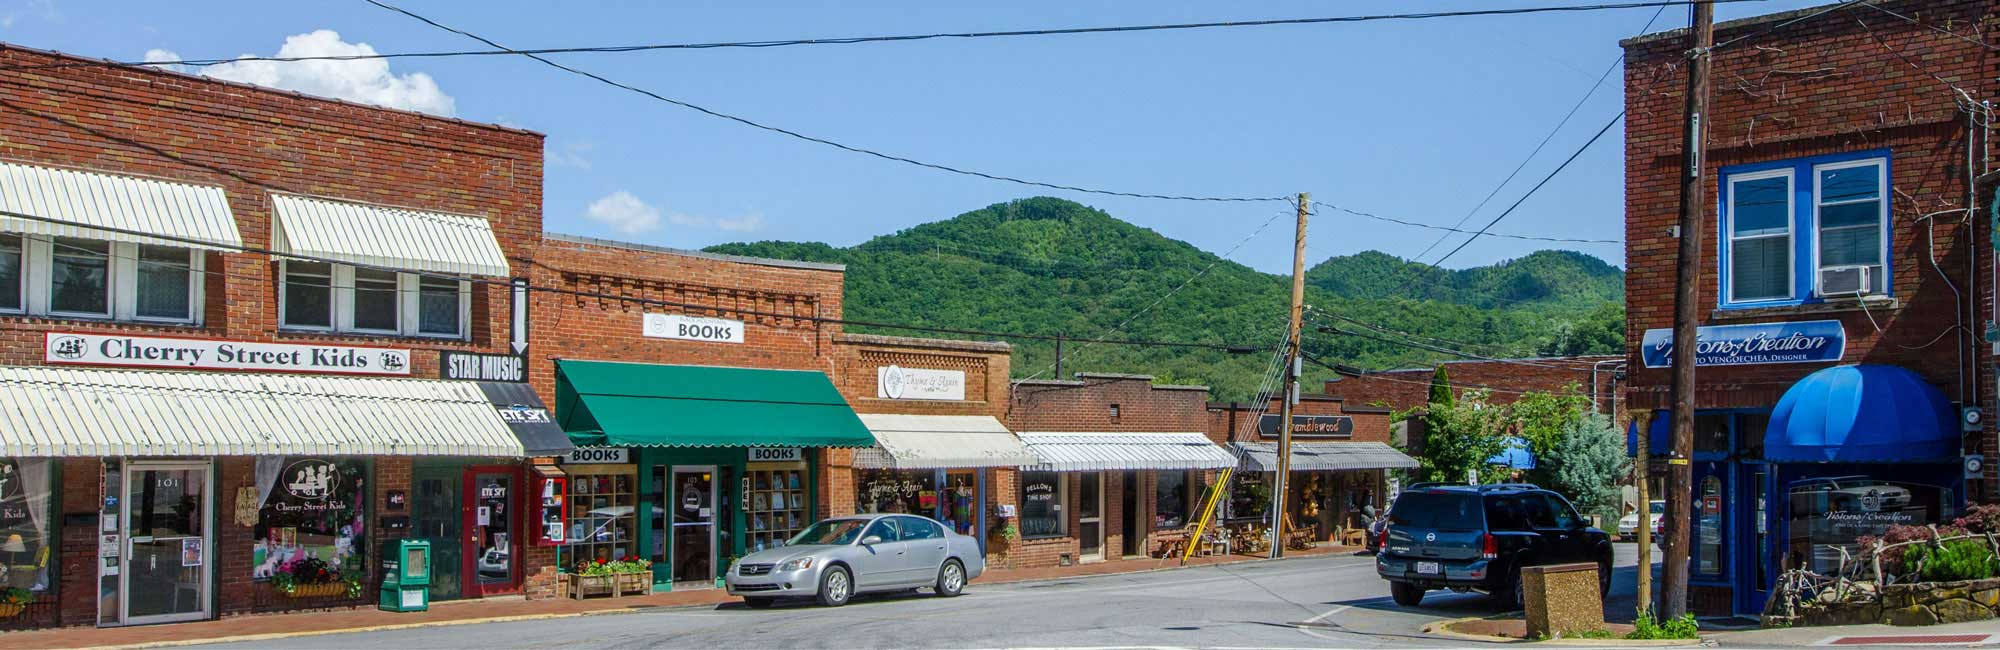 Black Mountain - AskAsheville - Asheville, North Carolina